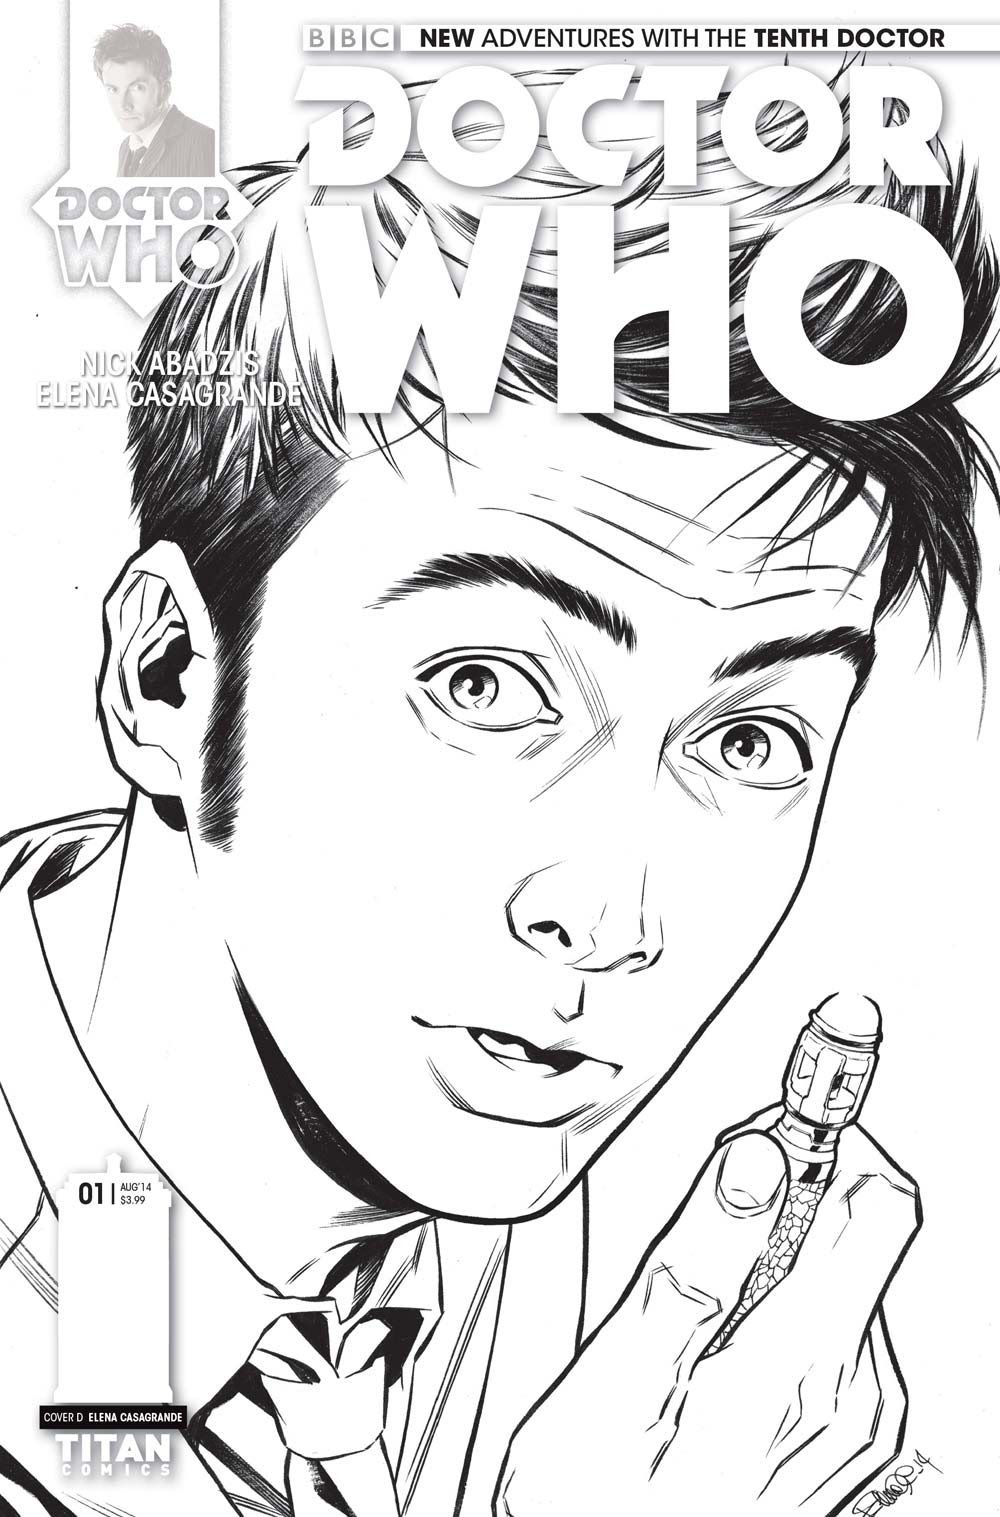 Doctor Who Coloring Page The Adventures Of The Tenth Doctor Cover